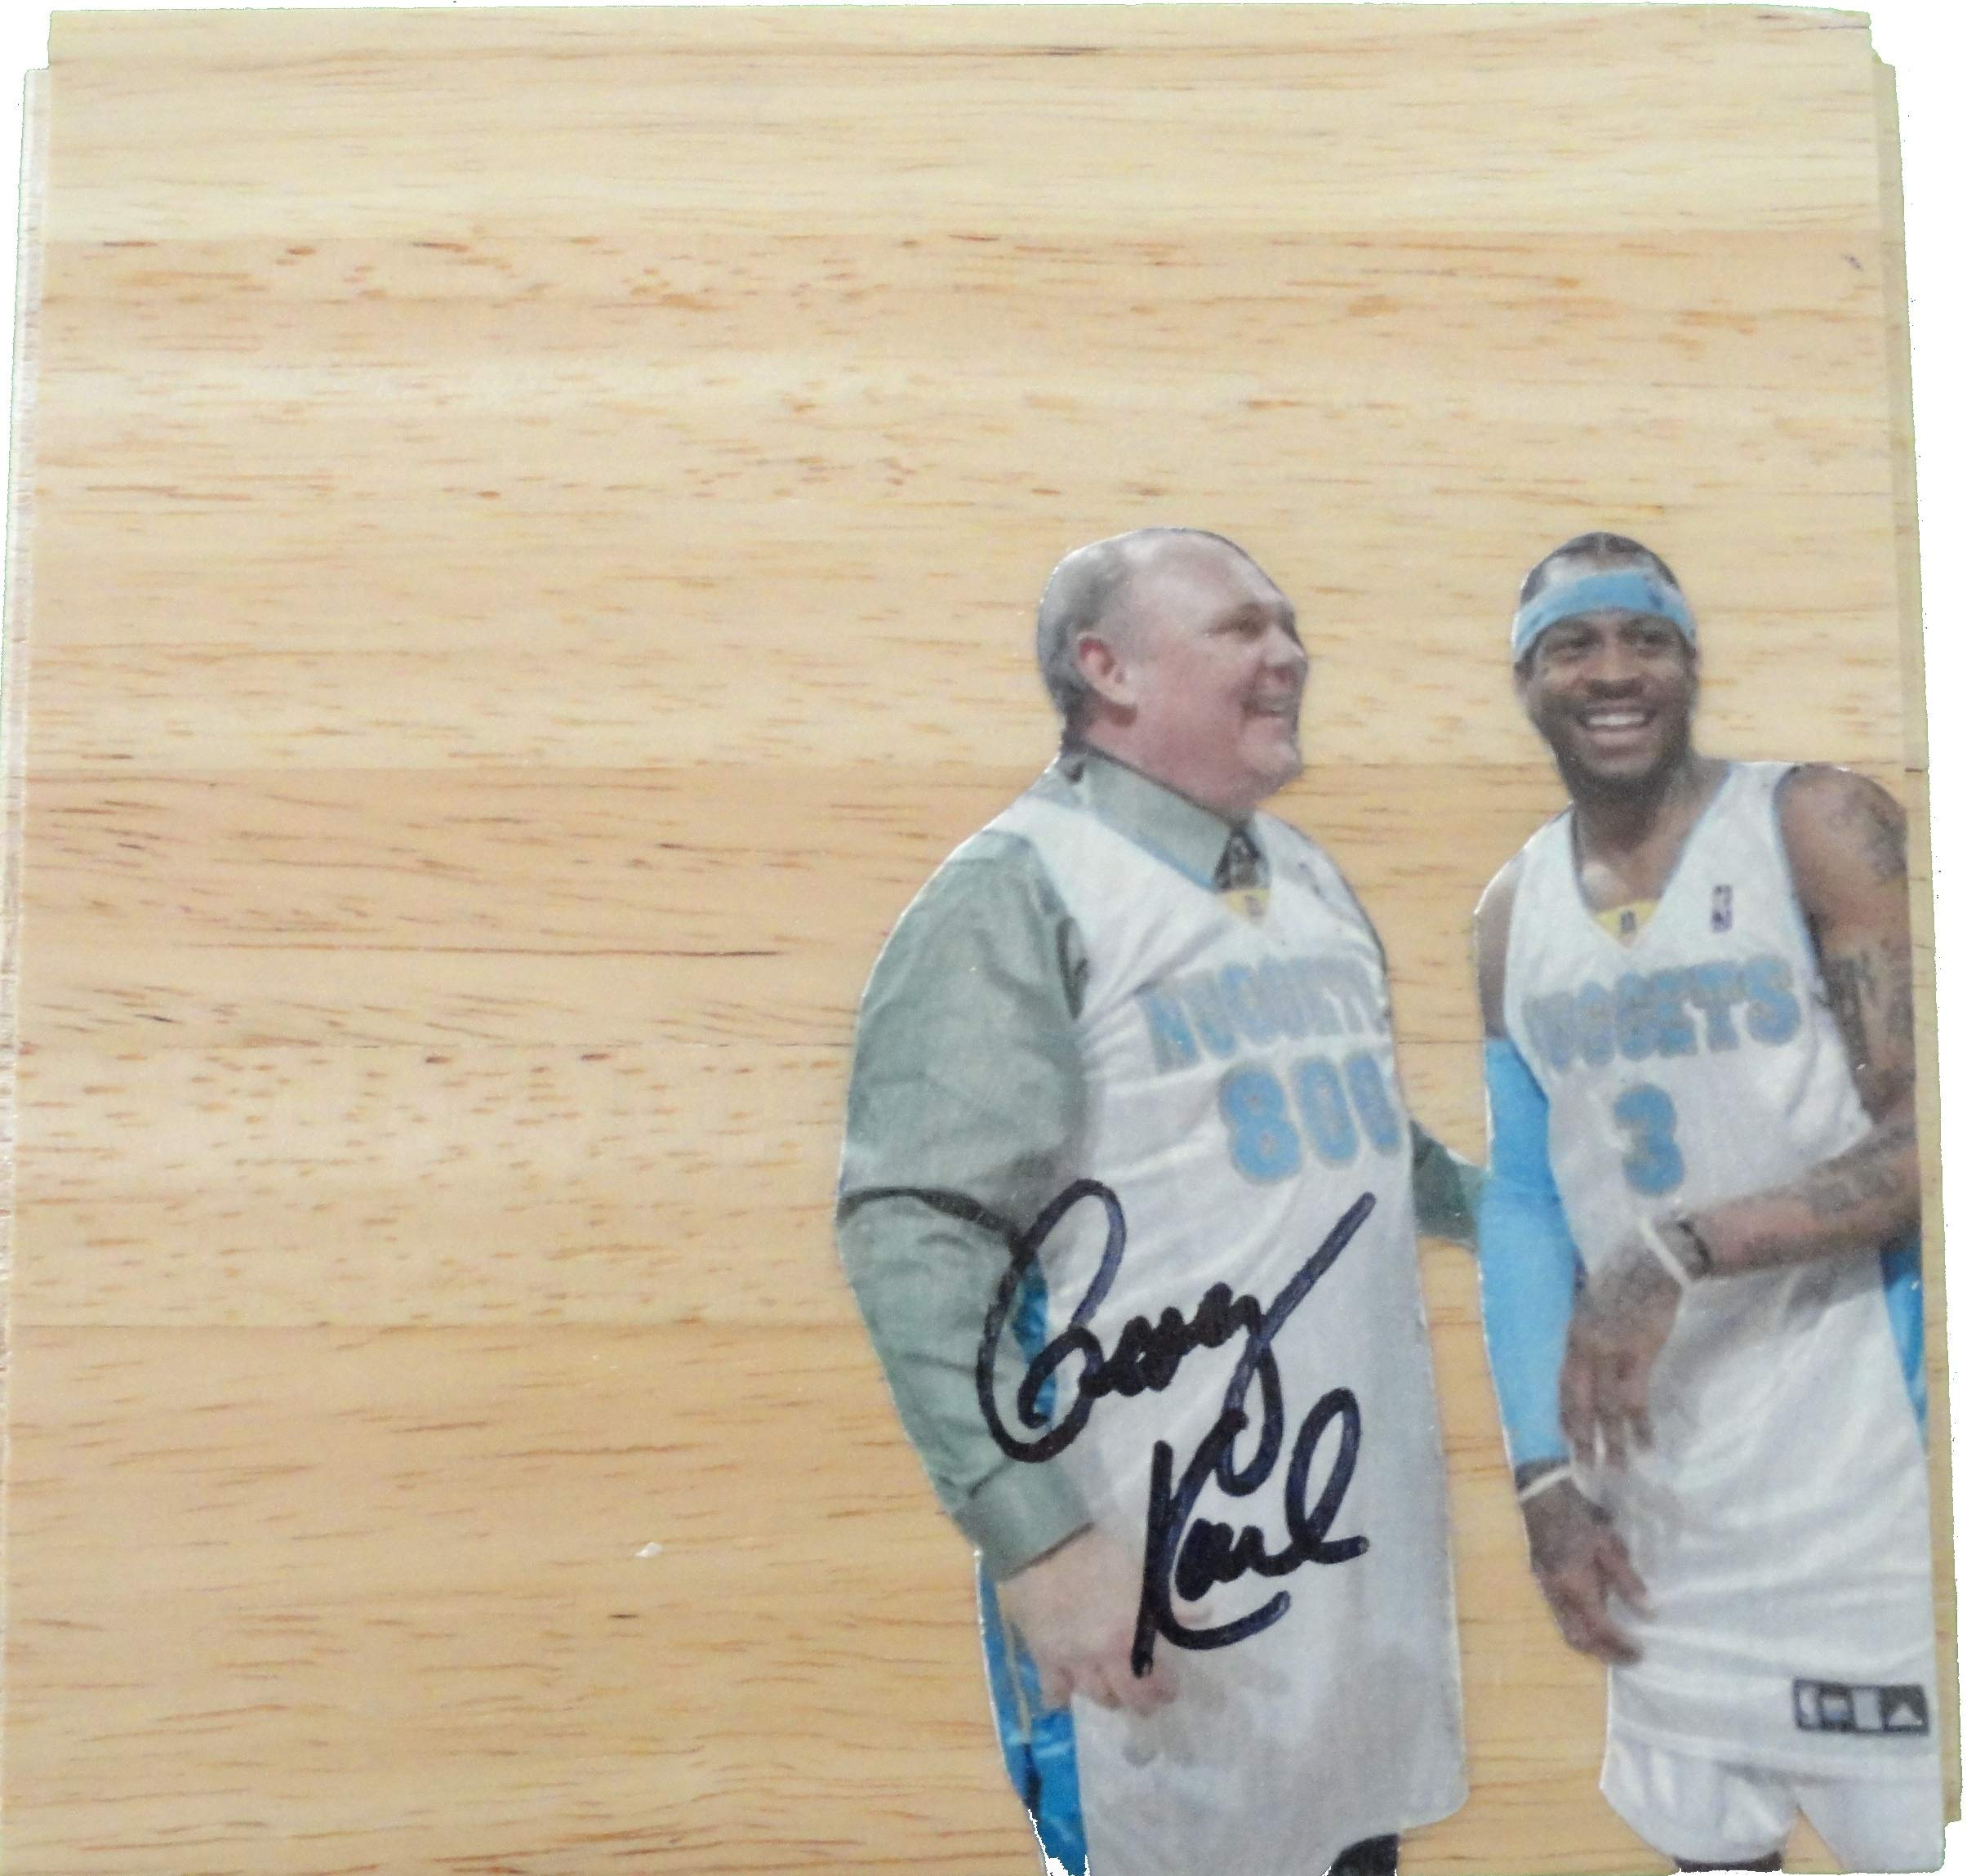 Denver Nuggets George Karl Autographed Hand Signed 6x6 Parquet Photo Floorboard with Proof Photo of Signing and COA Basketball Floor Boards